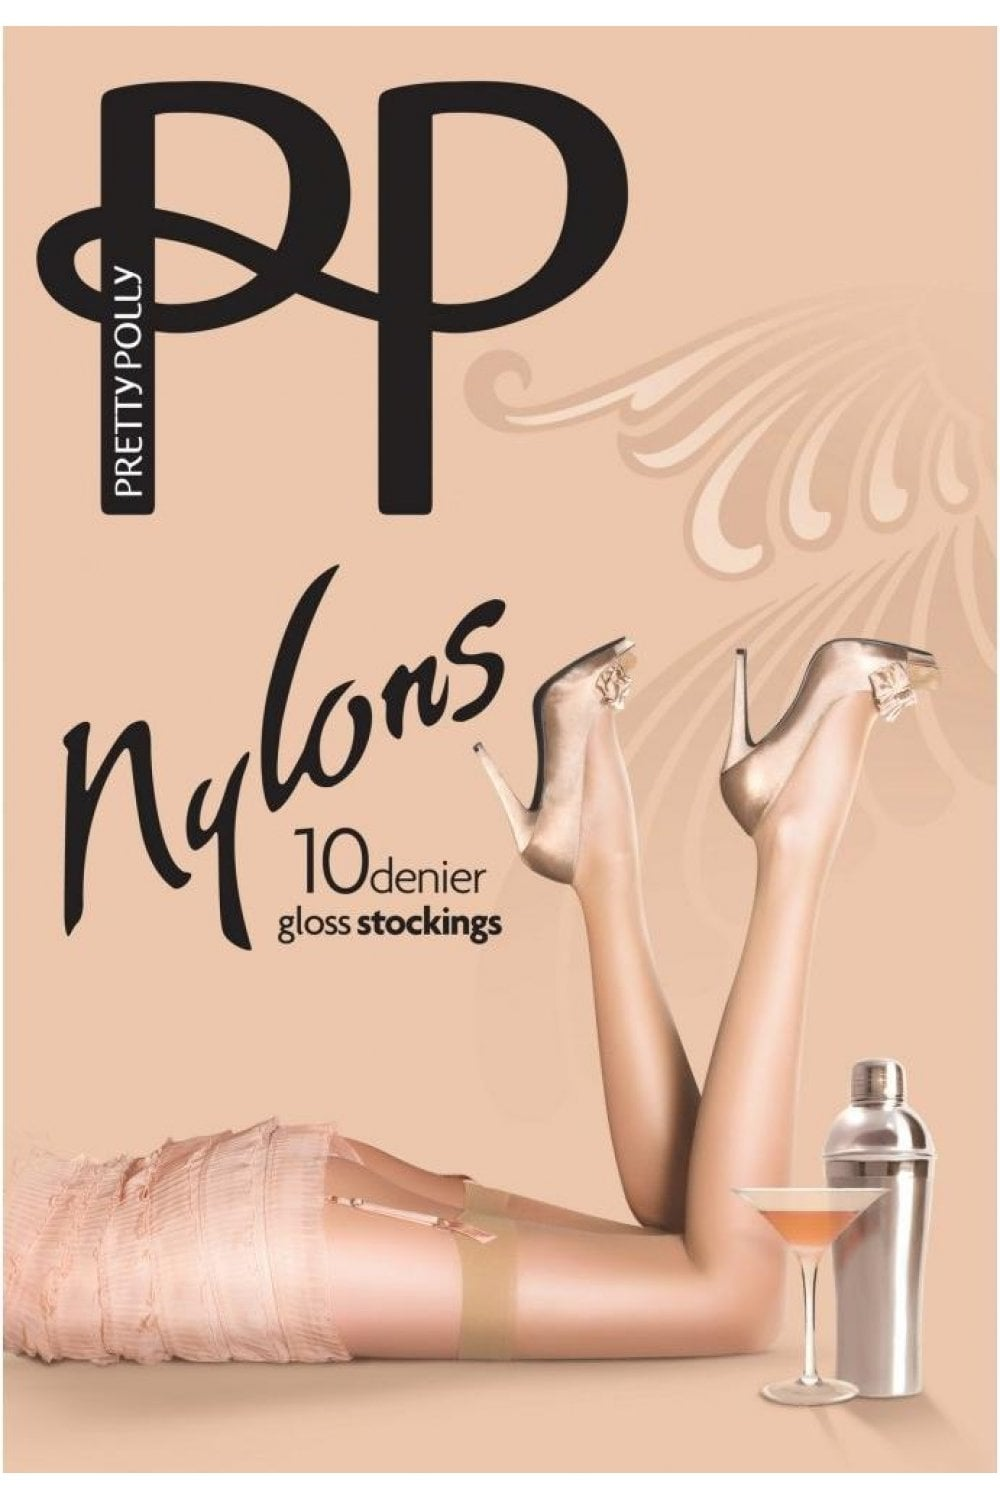 ea006c454 Nylons 10 Denier Gloss Stockings. Pretty Polly Nylons 10 Denier Gloss  Stockings